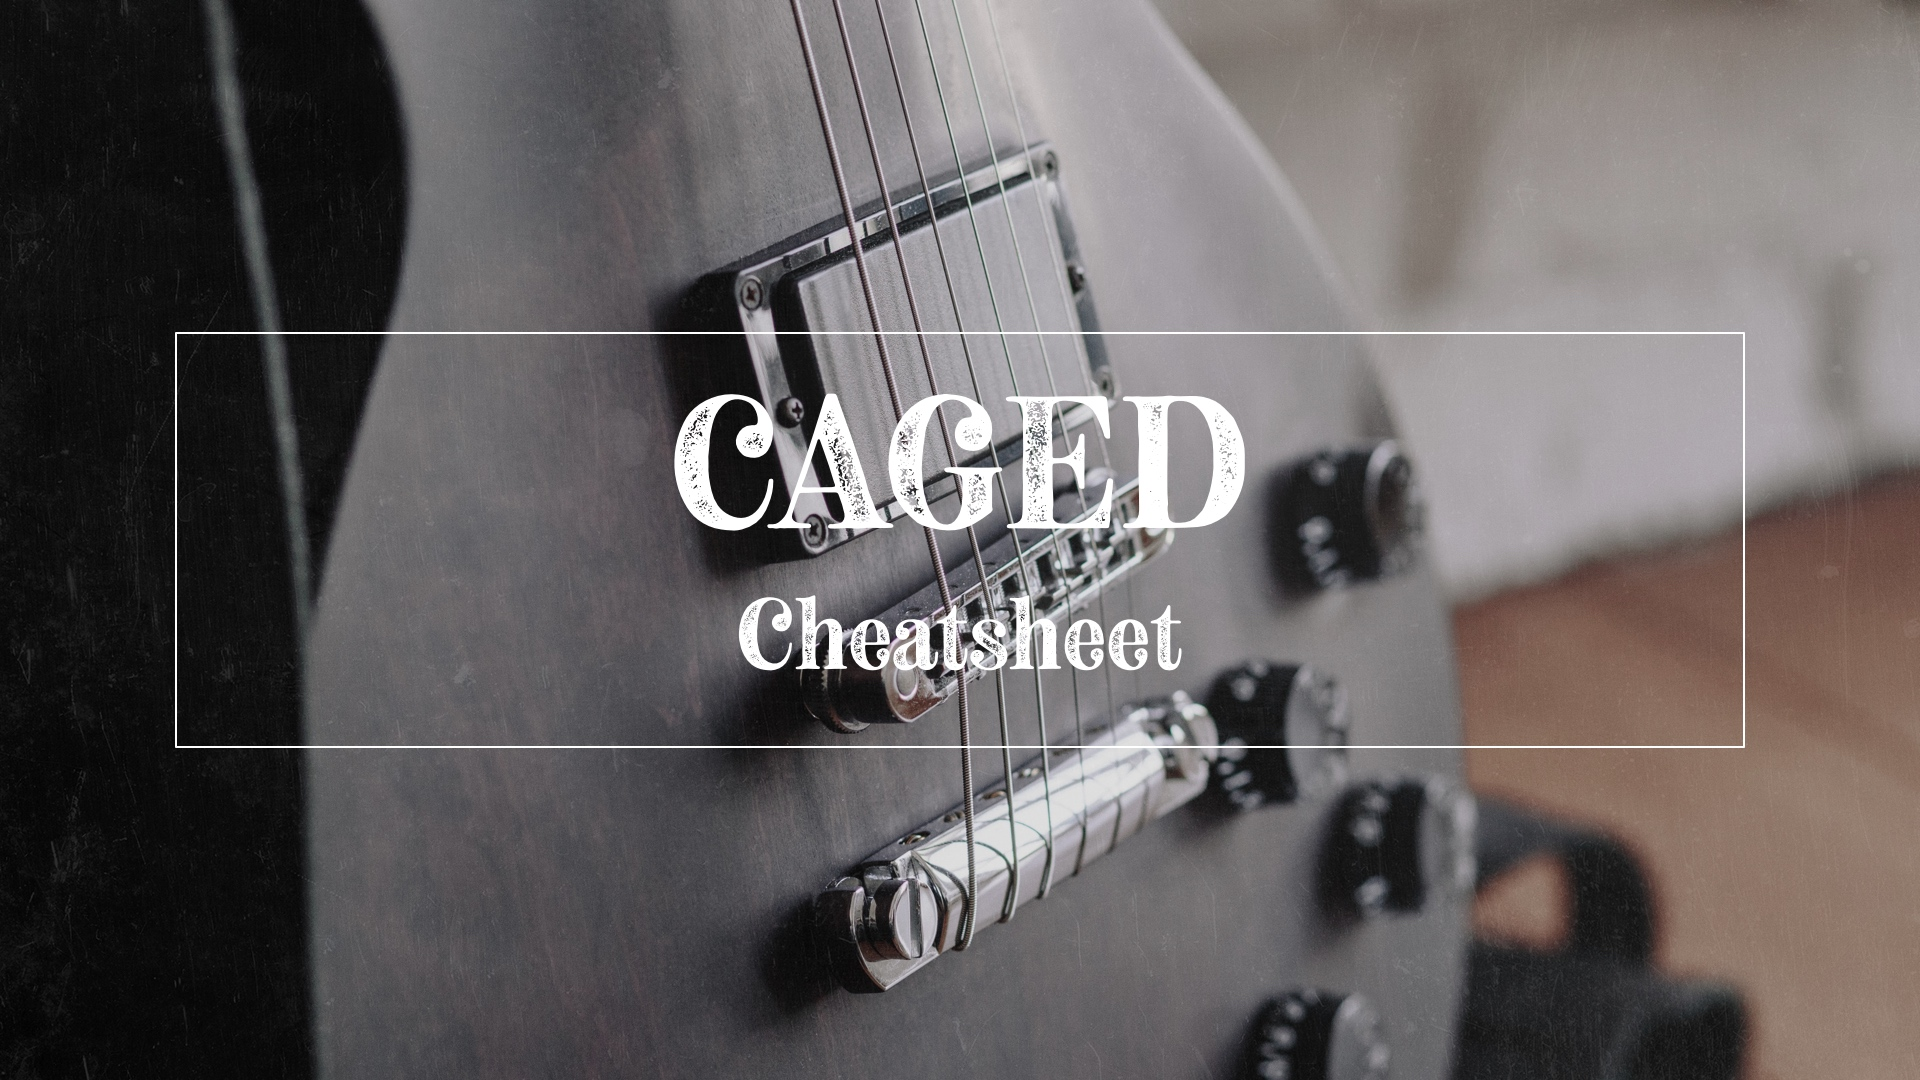 CAGED cheatsheet